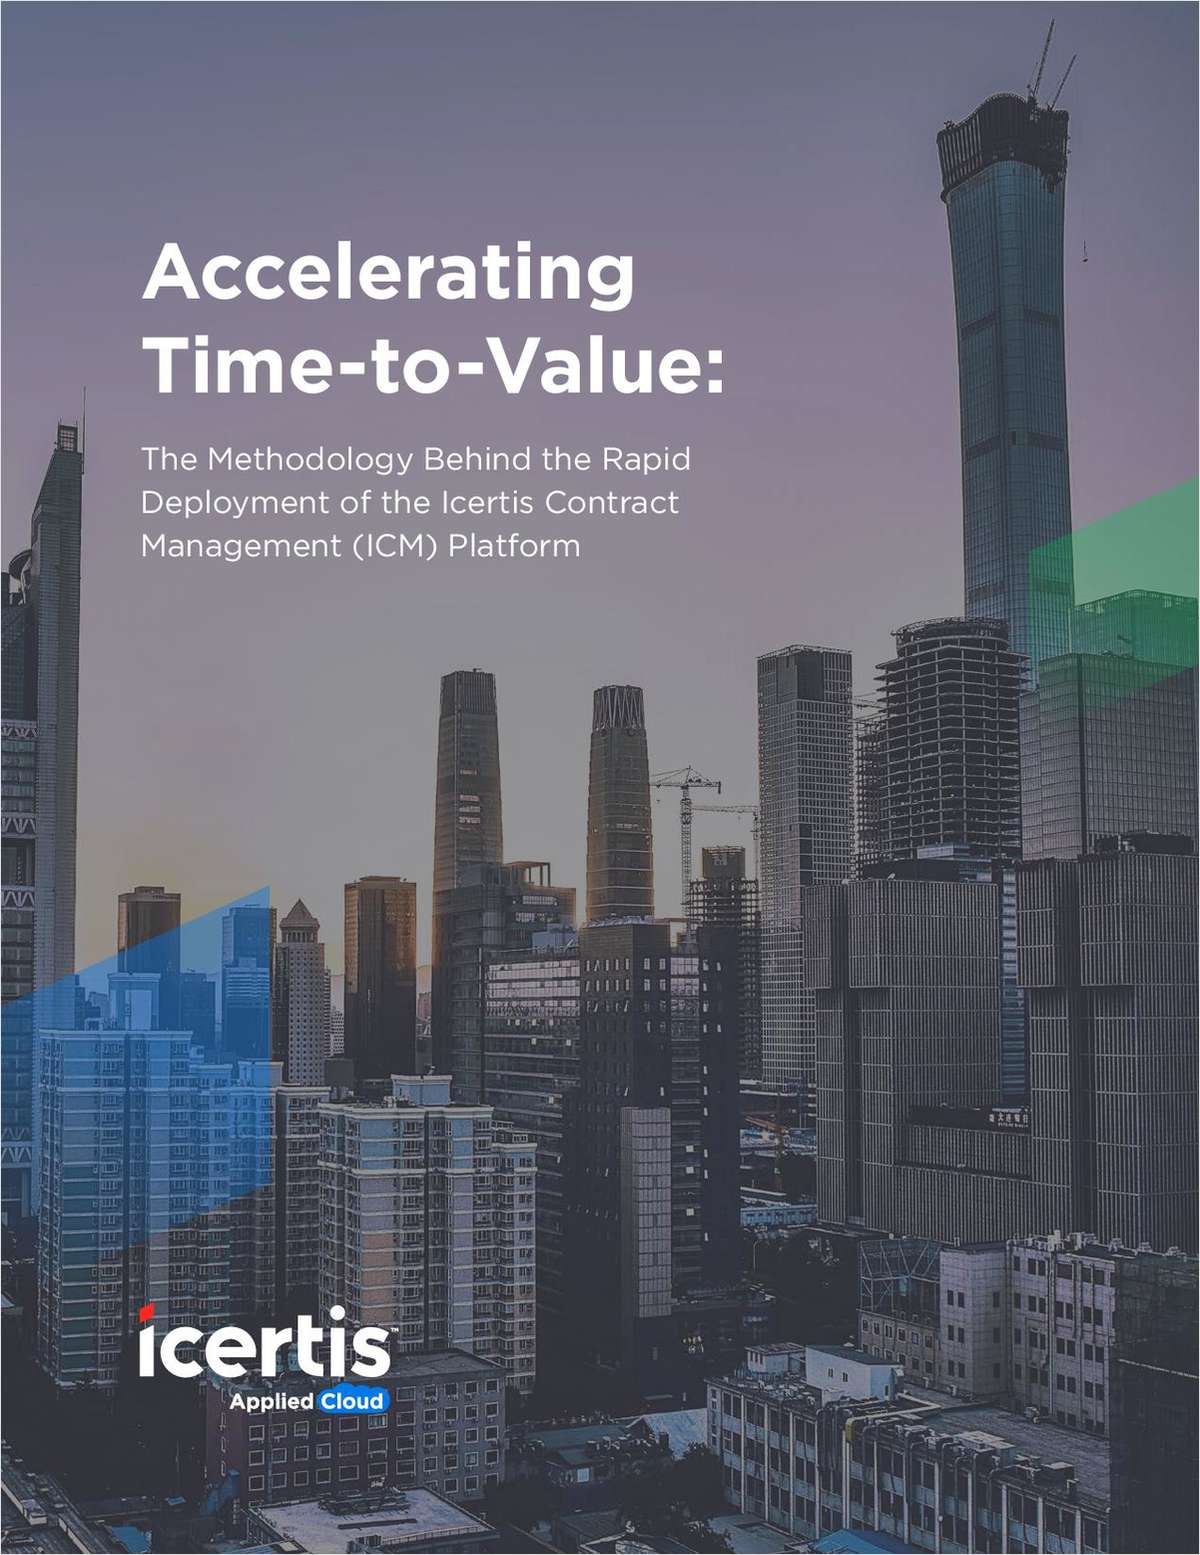 Accelerating Time-to-Value: The Methodology Behind the Rapid Deployment of the Icertis Contract Management (ICM) Platform